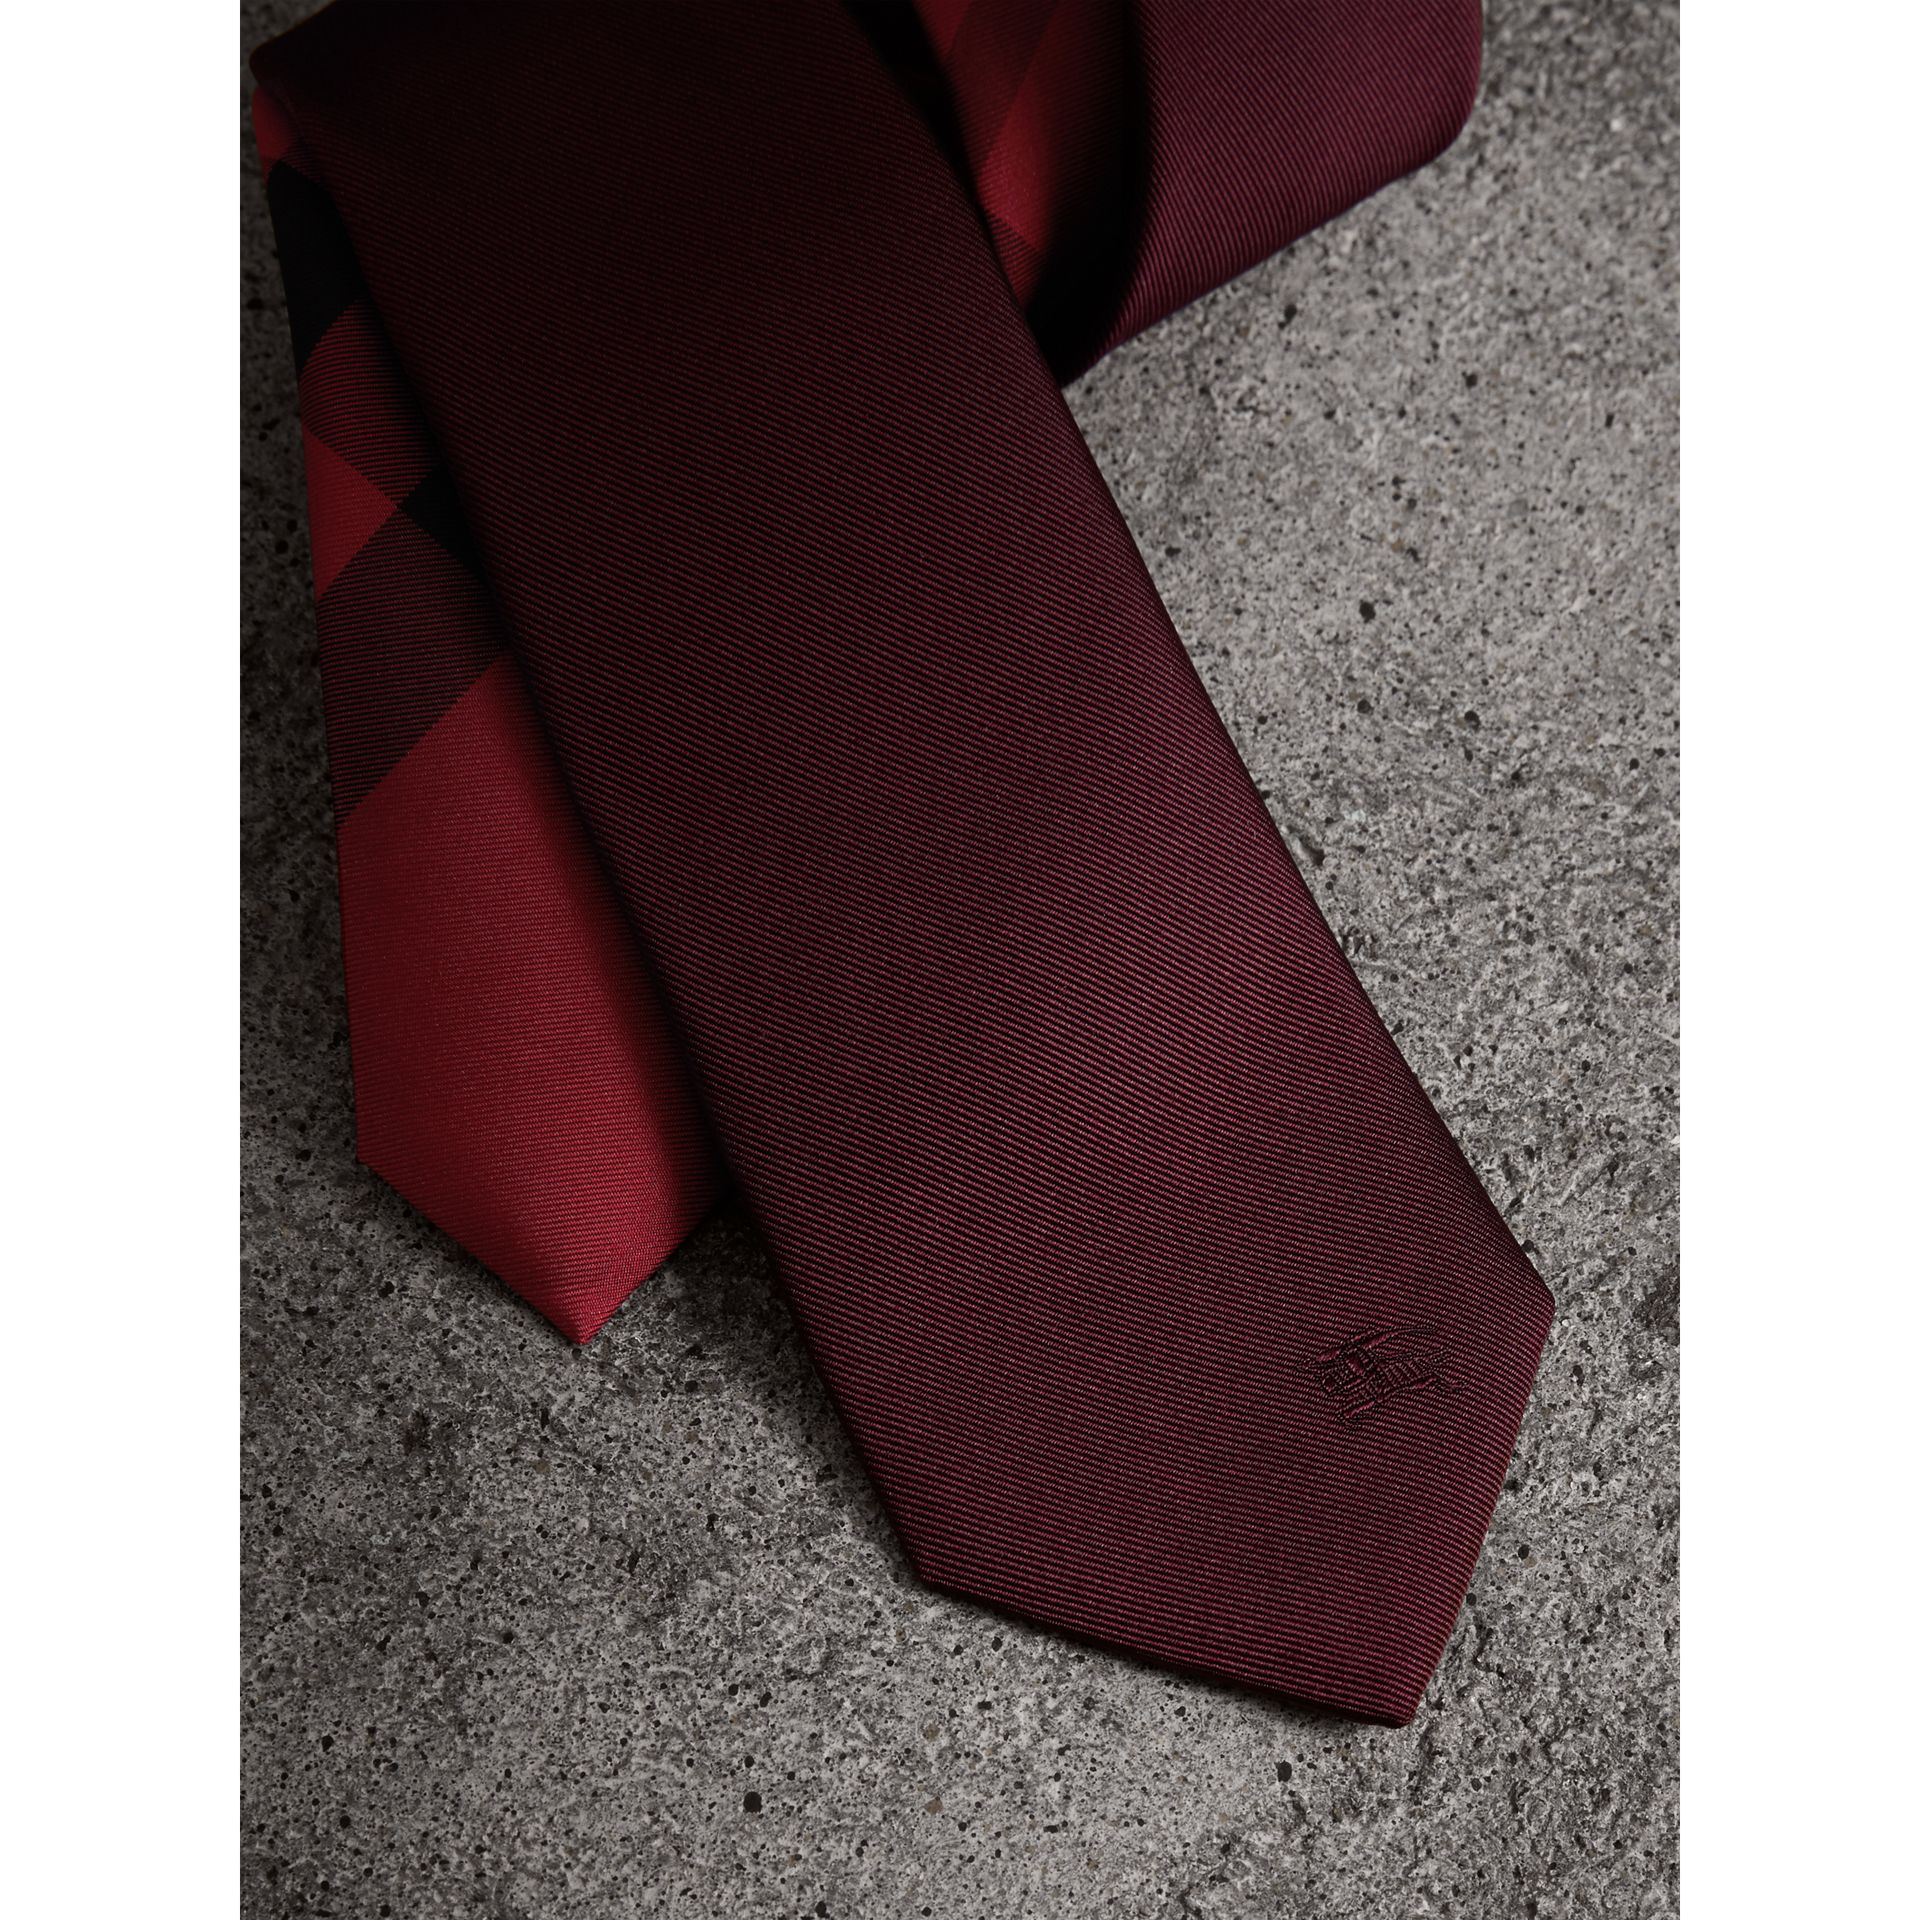 Slim Cut Check Silk Twill Tie in Mahogany Red - Men | Burberry - gallery image 2